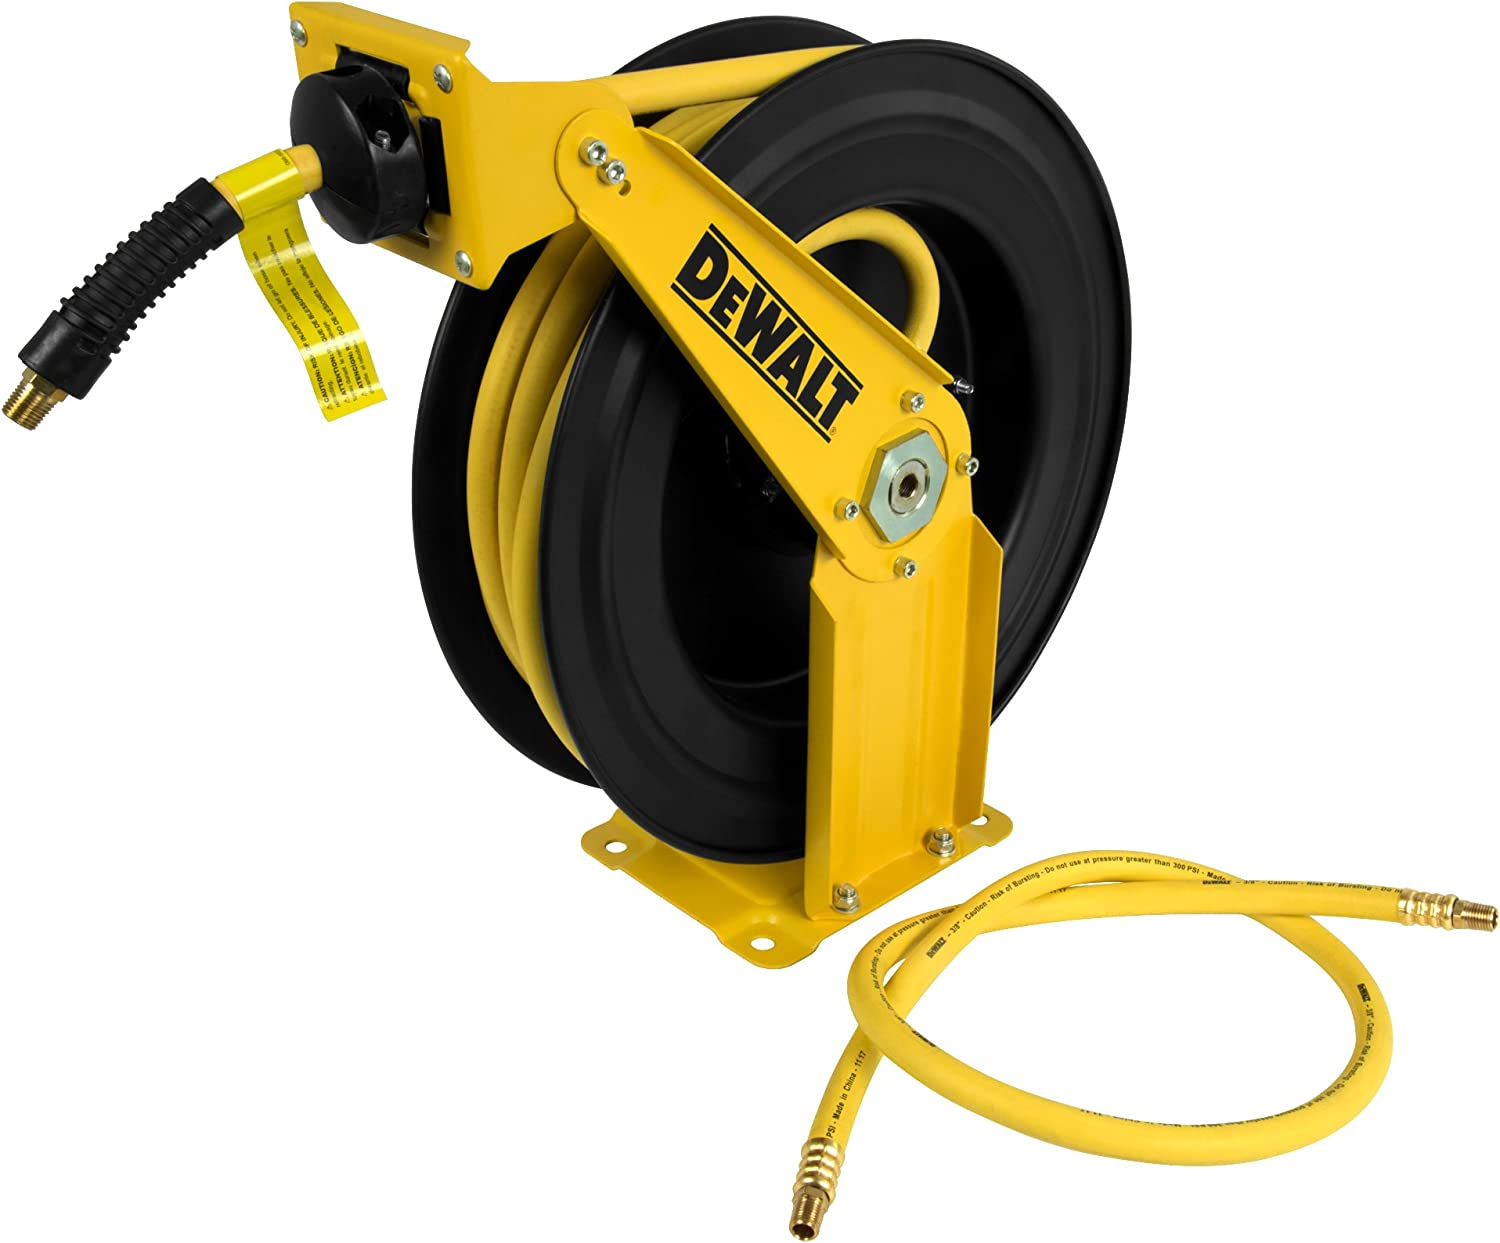 "DeWalt DXCM024-0343 Double Arm Hose Reel with 3/8"" x 50' Premium Rubber Hose - -"